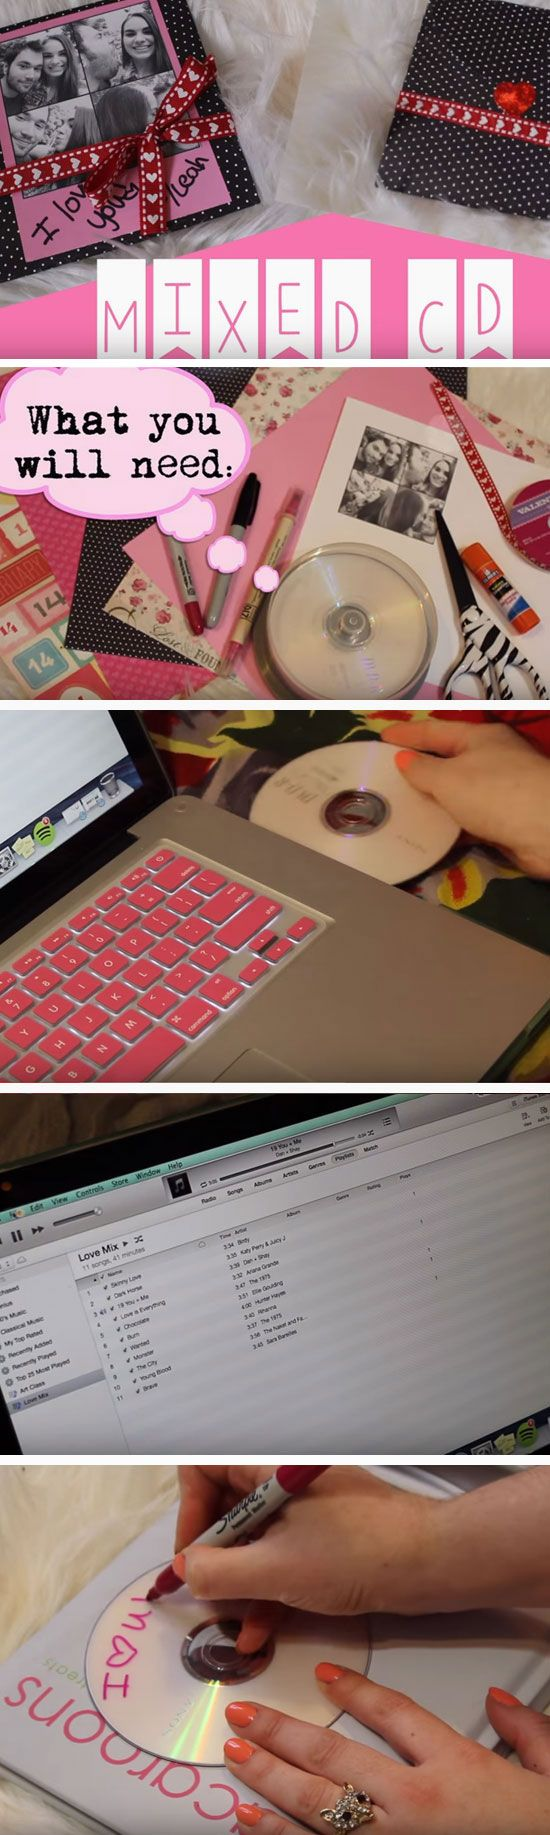 23 Romantic Diy Anniversary Gifts For Him Mix Cd And